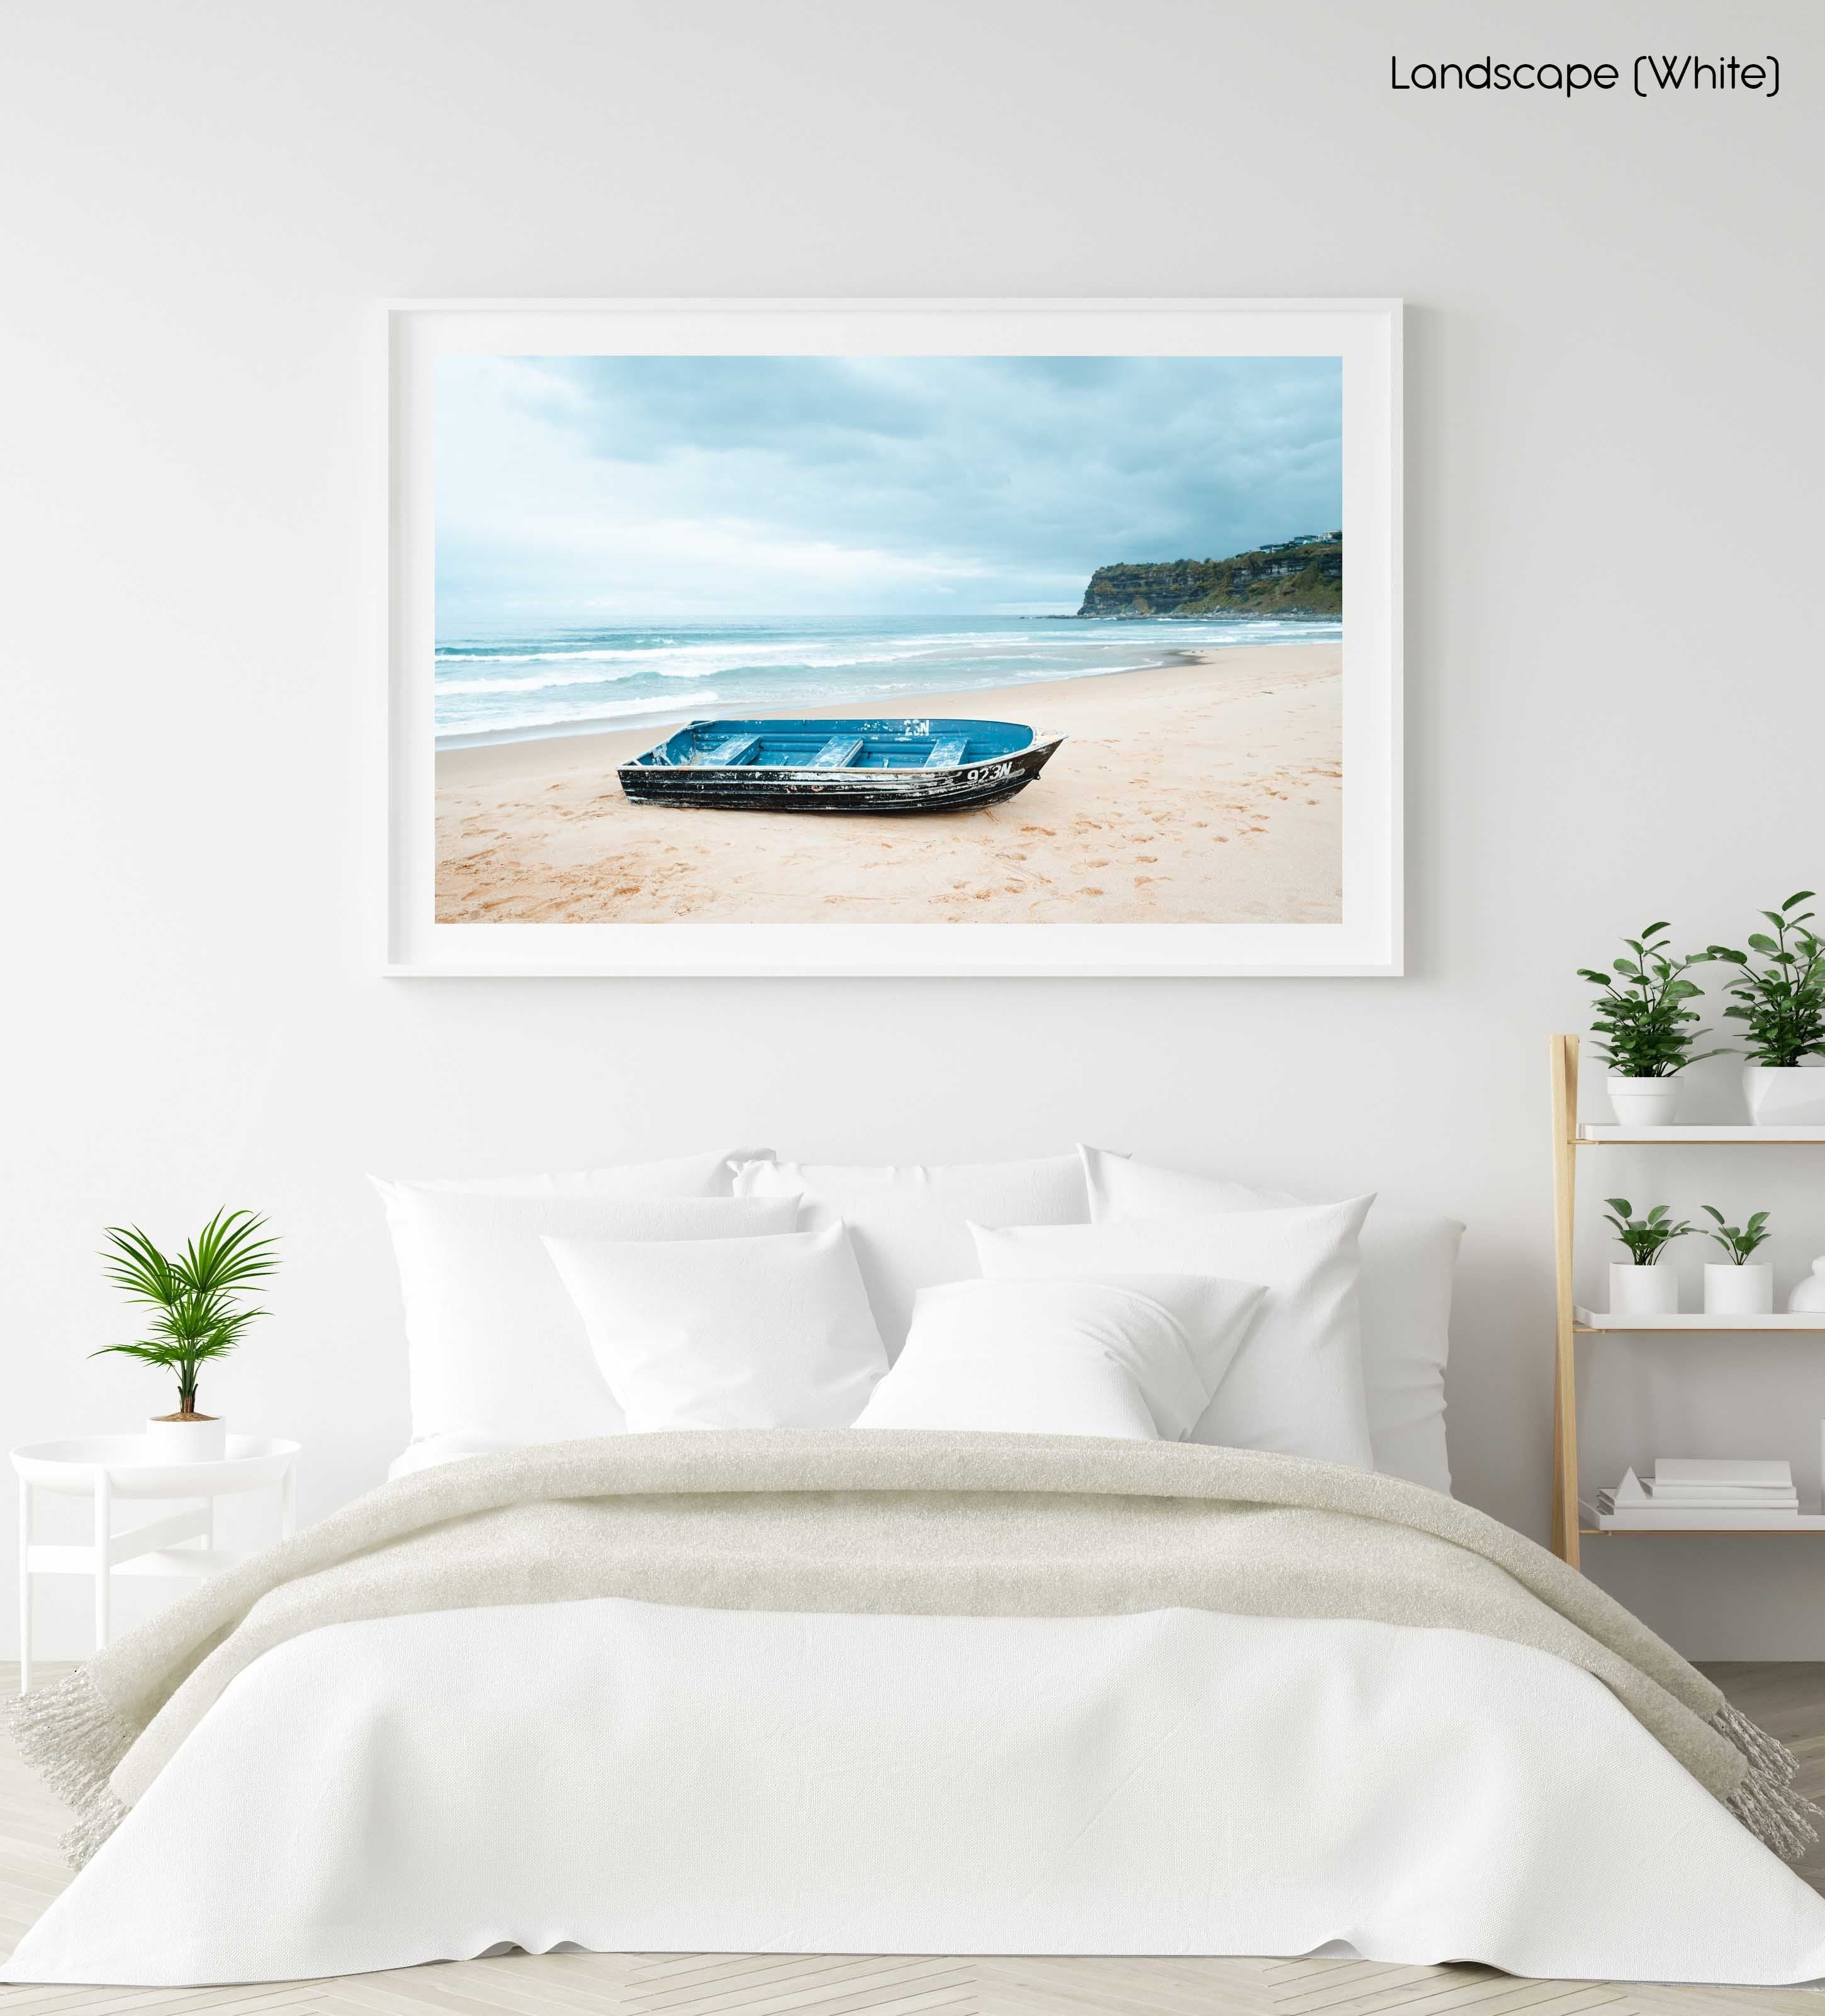 Stranded blue boat on northern beaches on cloudy day in a white fine art frame